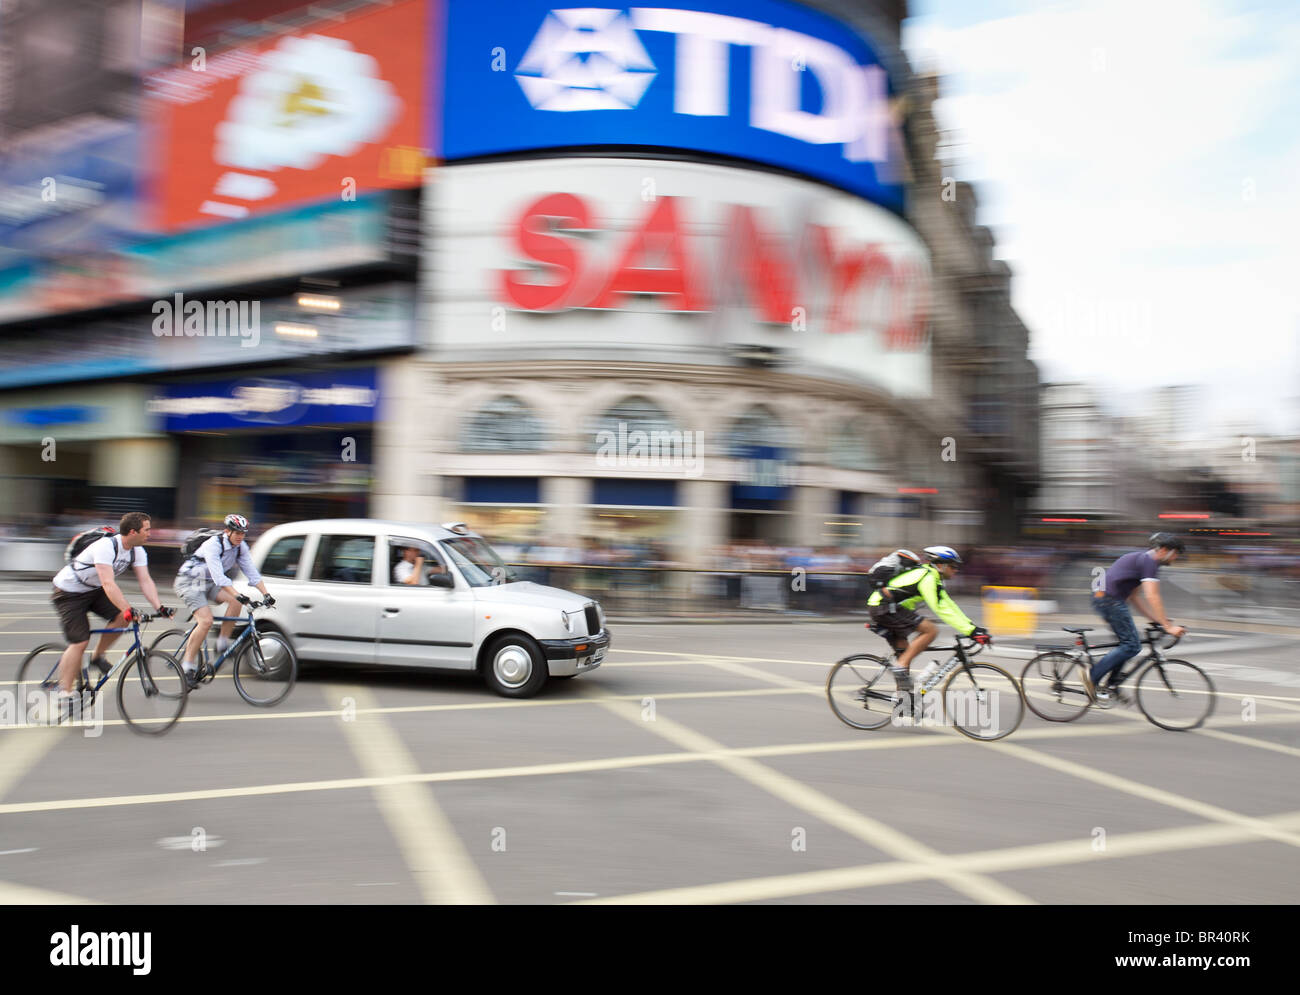 cyclists-in-piccadilly-circus-london-BR4